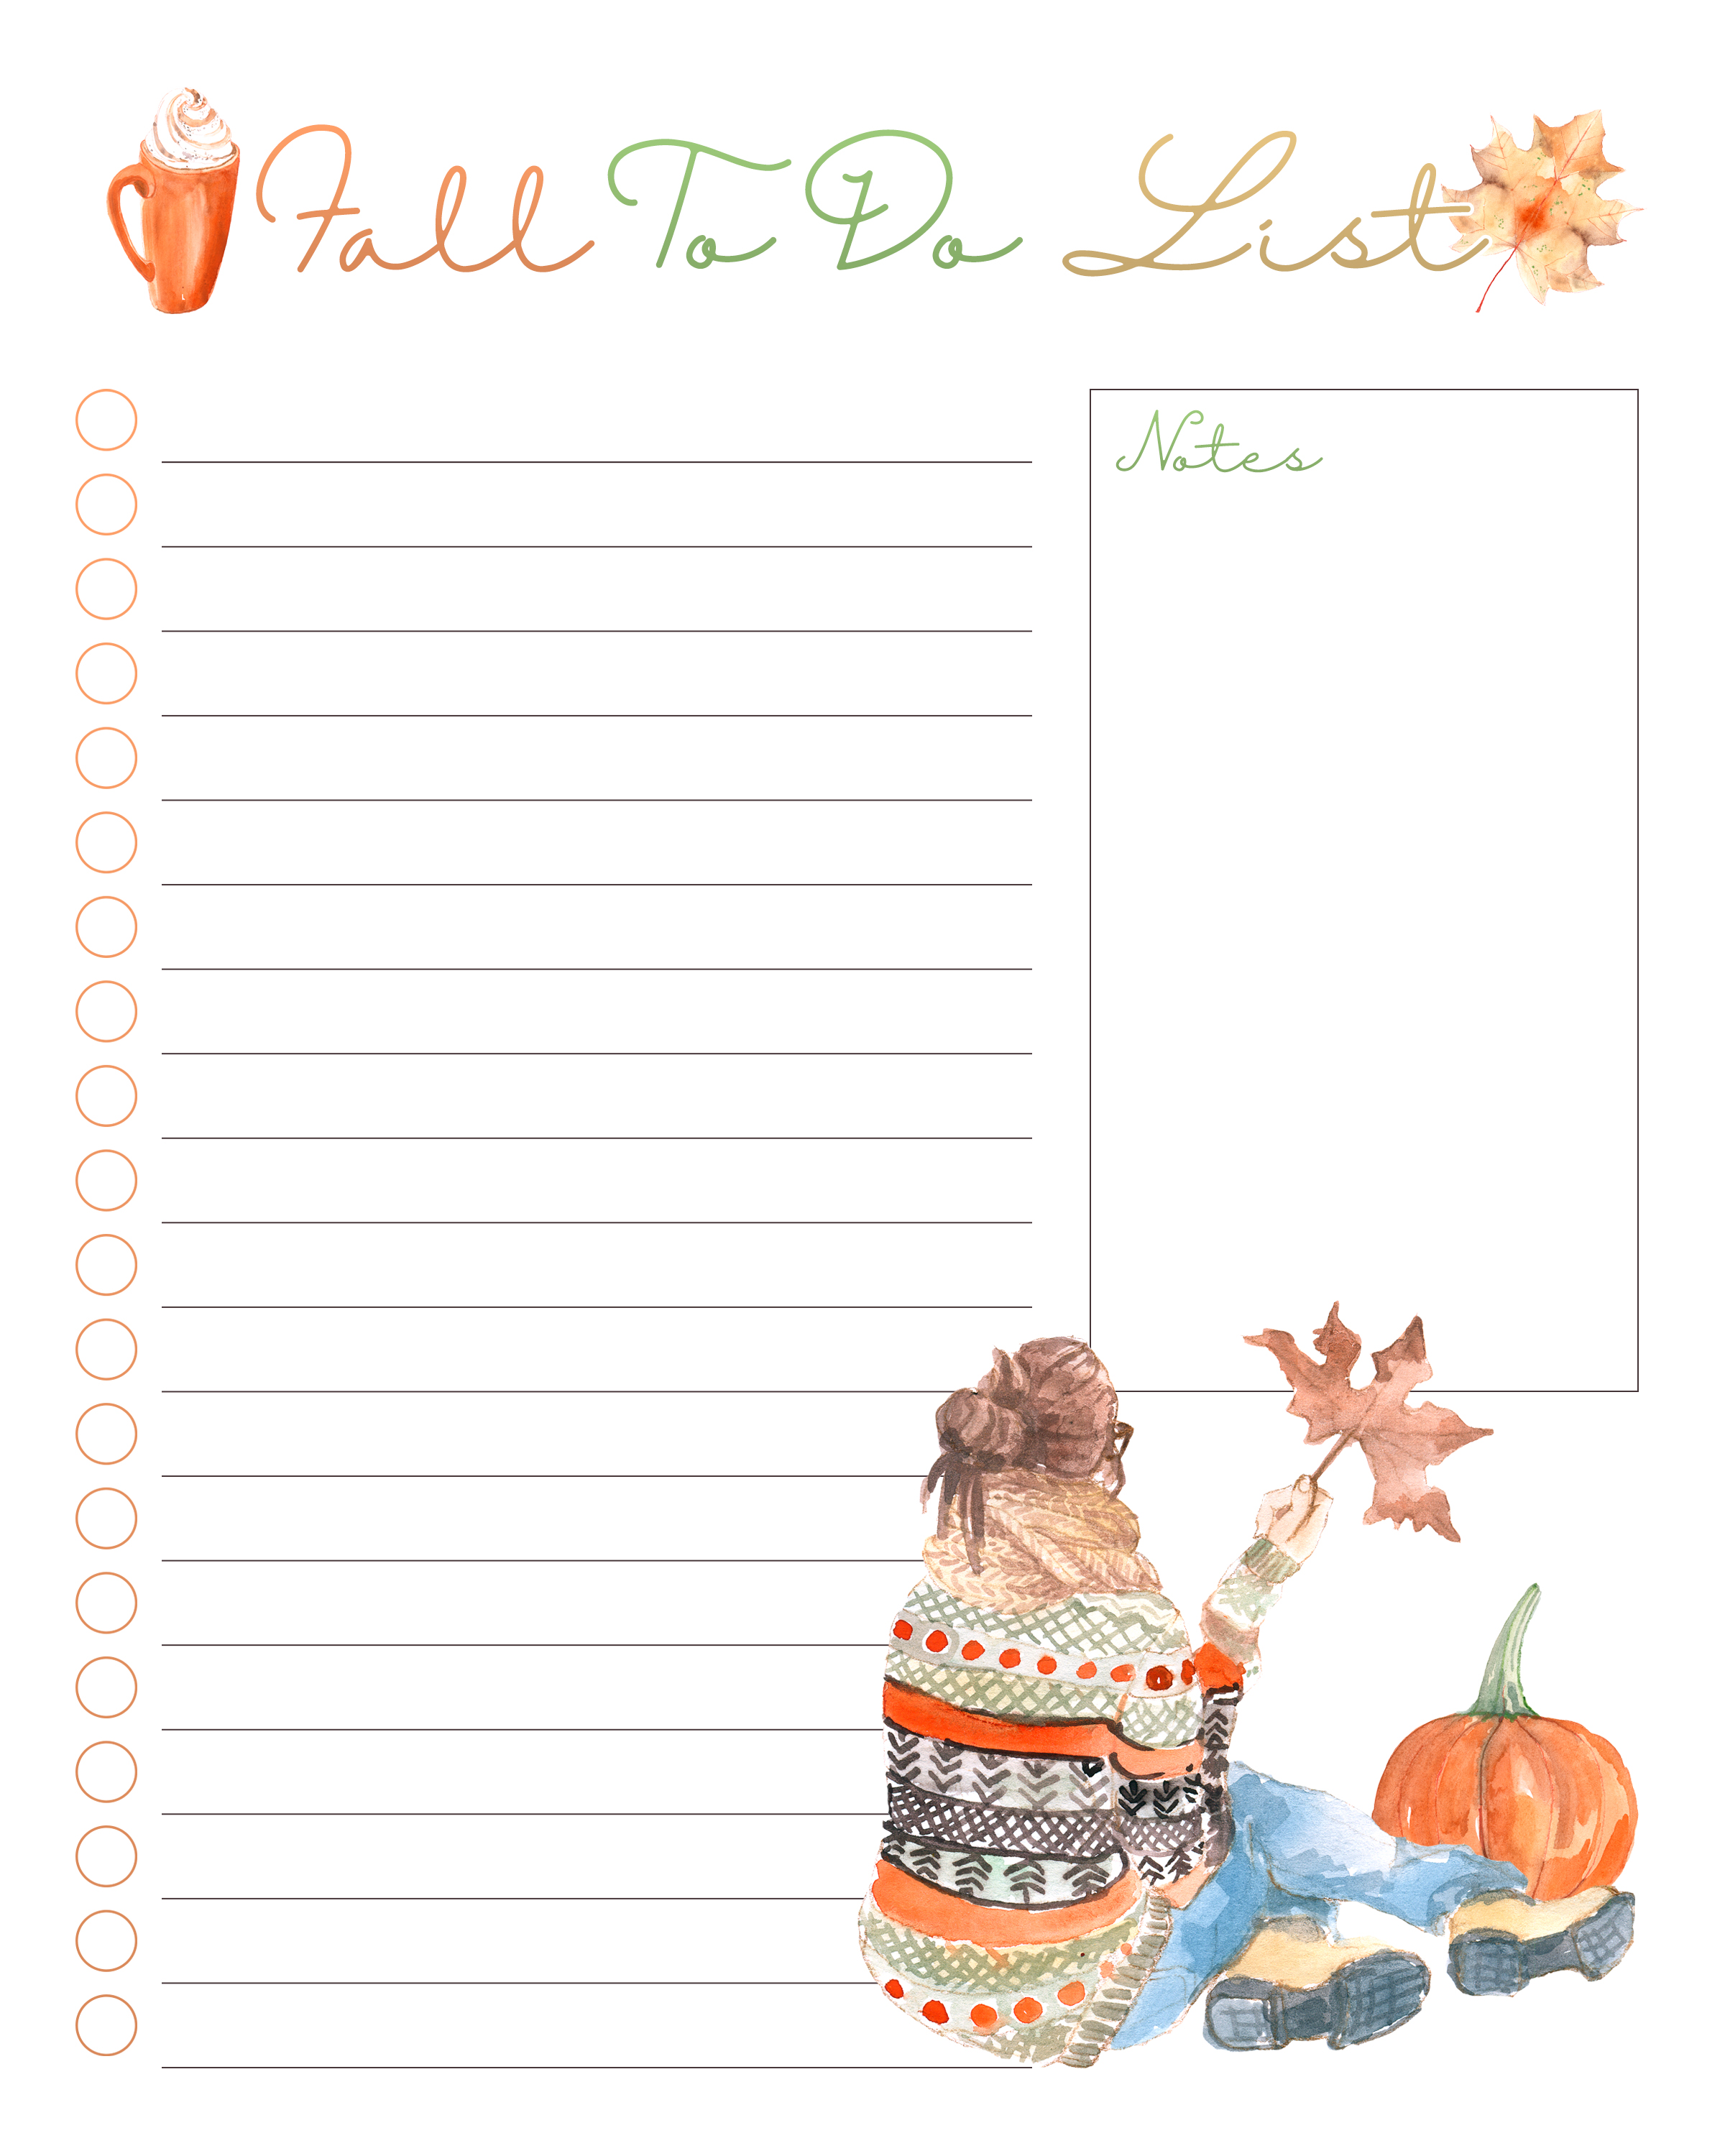 graphic about Printable Lists called Cost-free Printable Slide Lists - The Cottage Industry